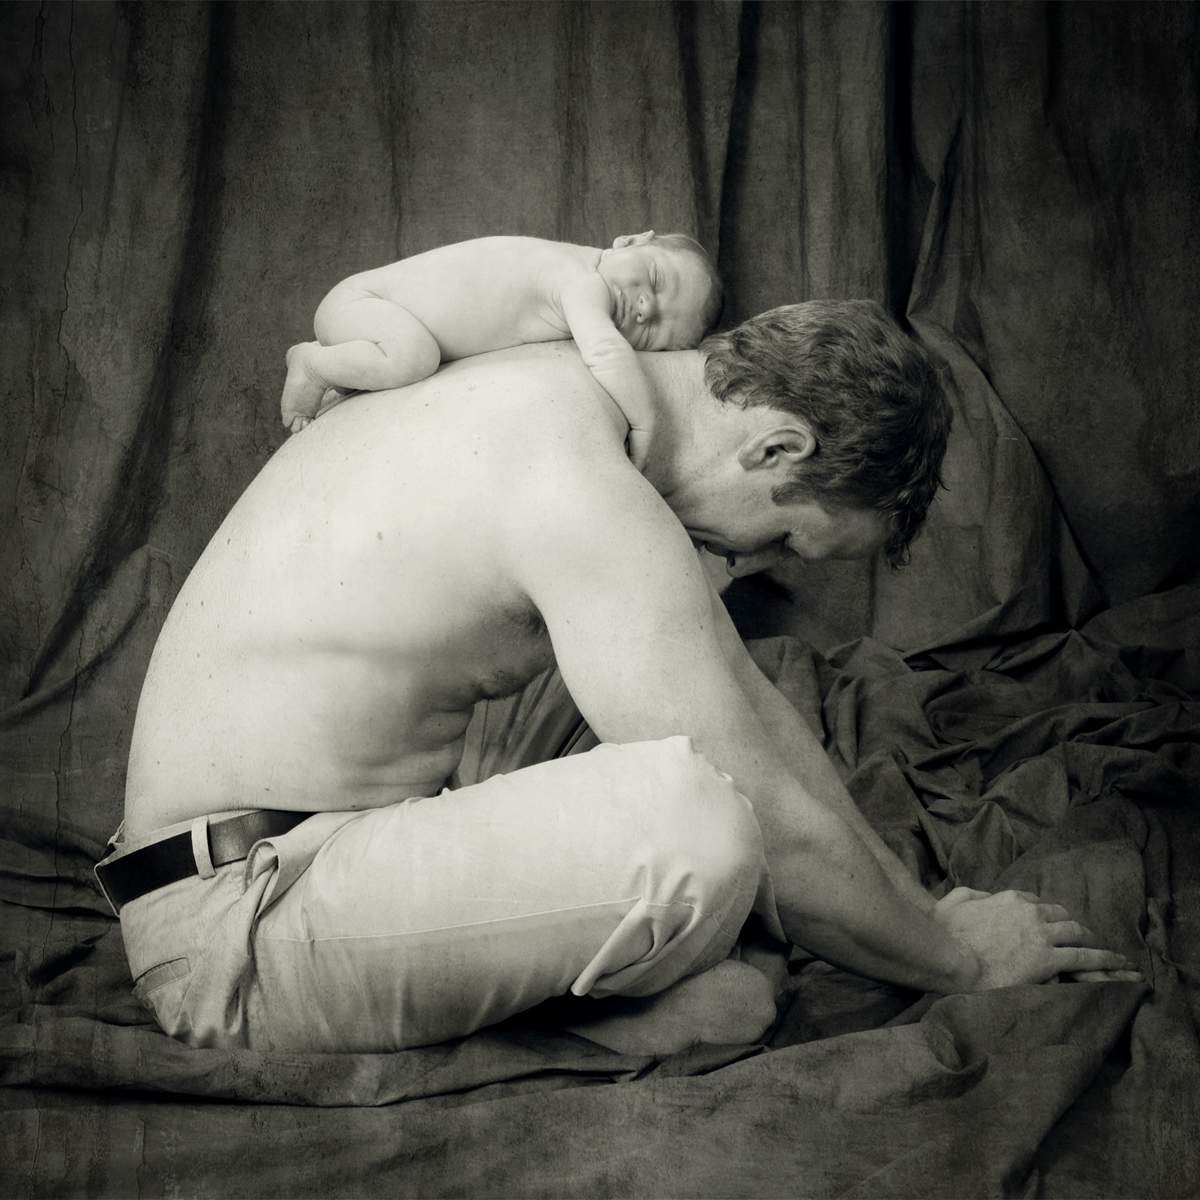 Newborn on Dad's back - Ginger Wagoner, Photographer, Photosynthesis